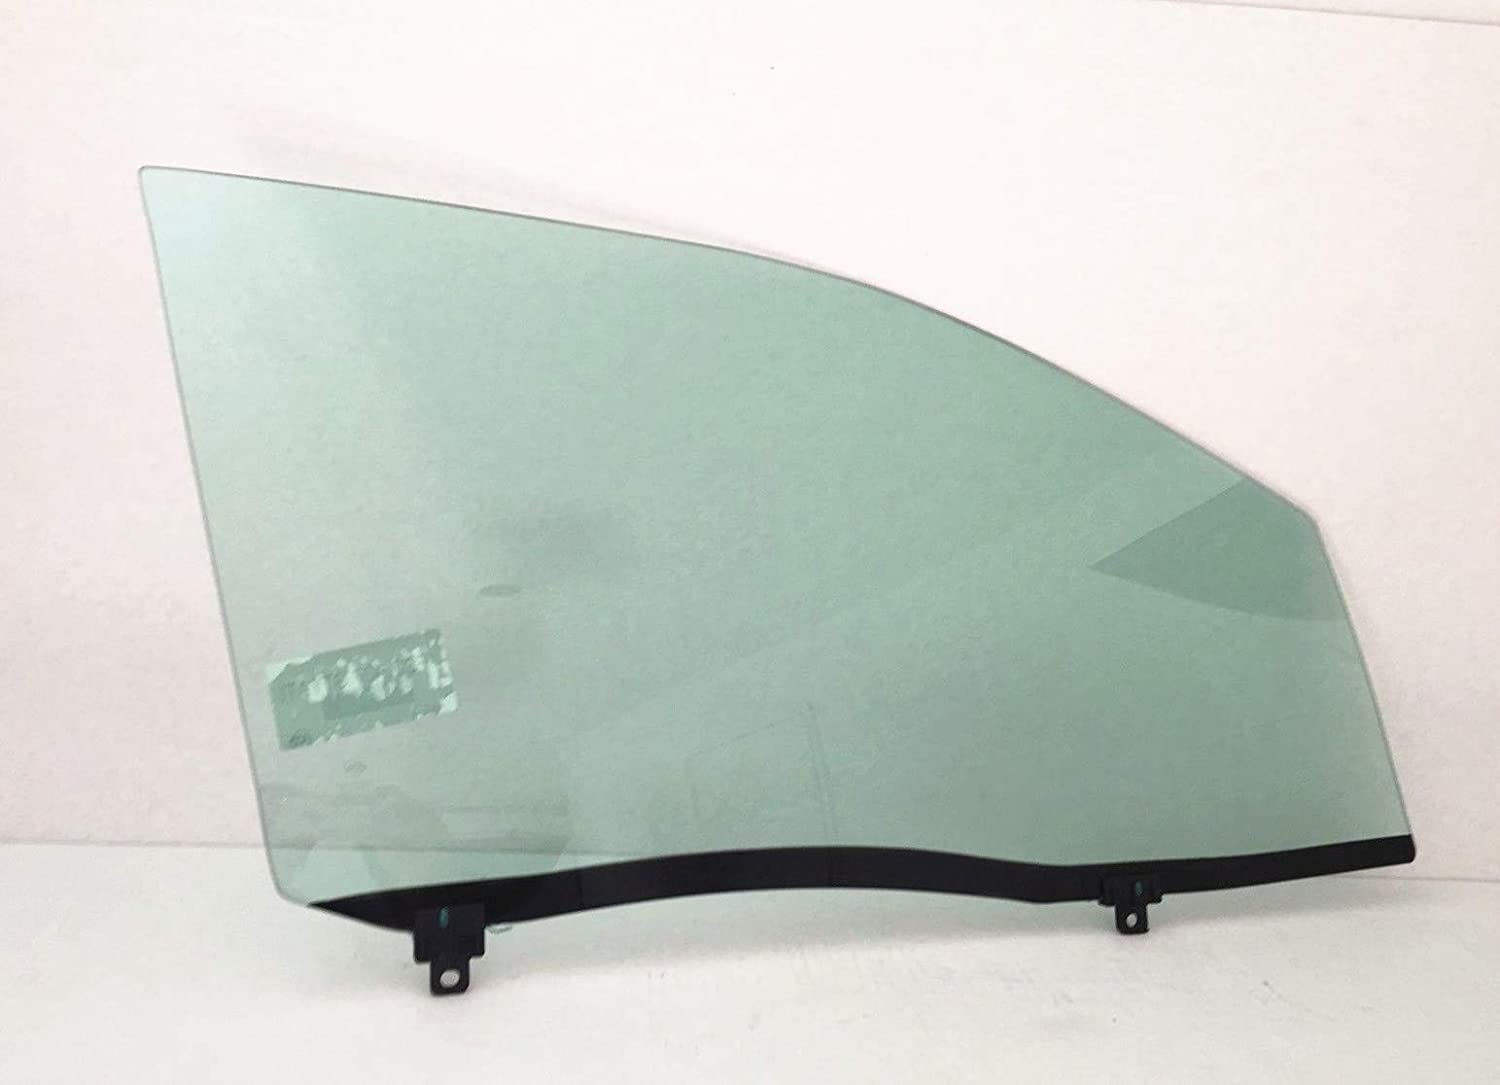 NAGD Passenger sold out Right Reservation Side Front Door Window Glass Replaceme